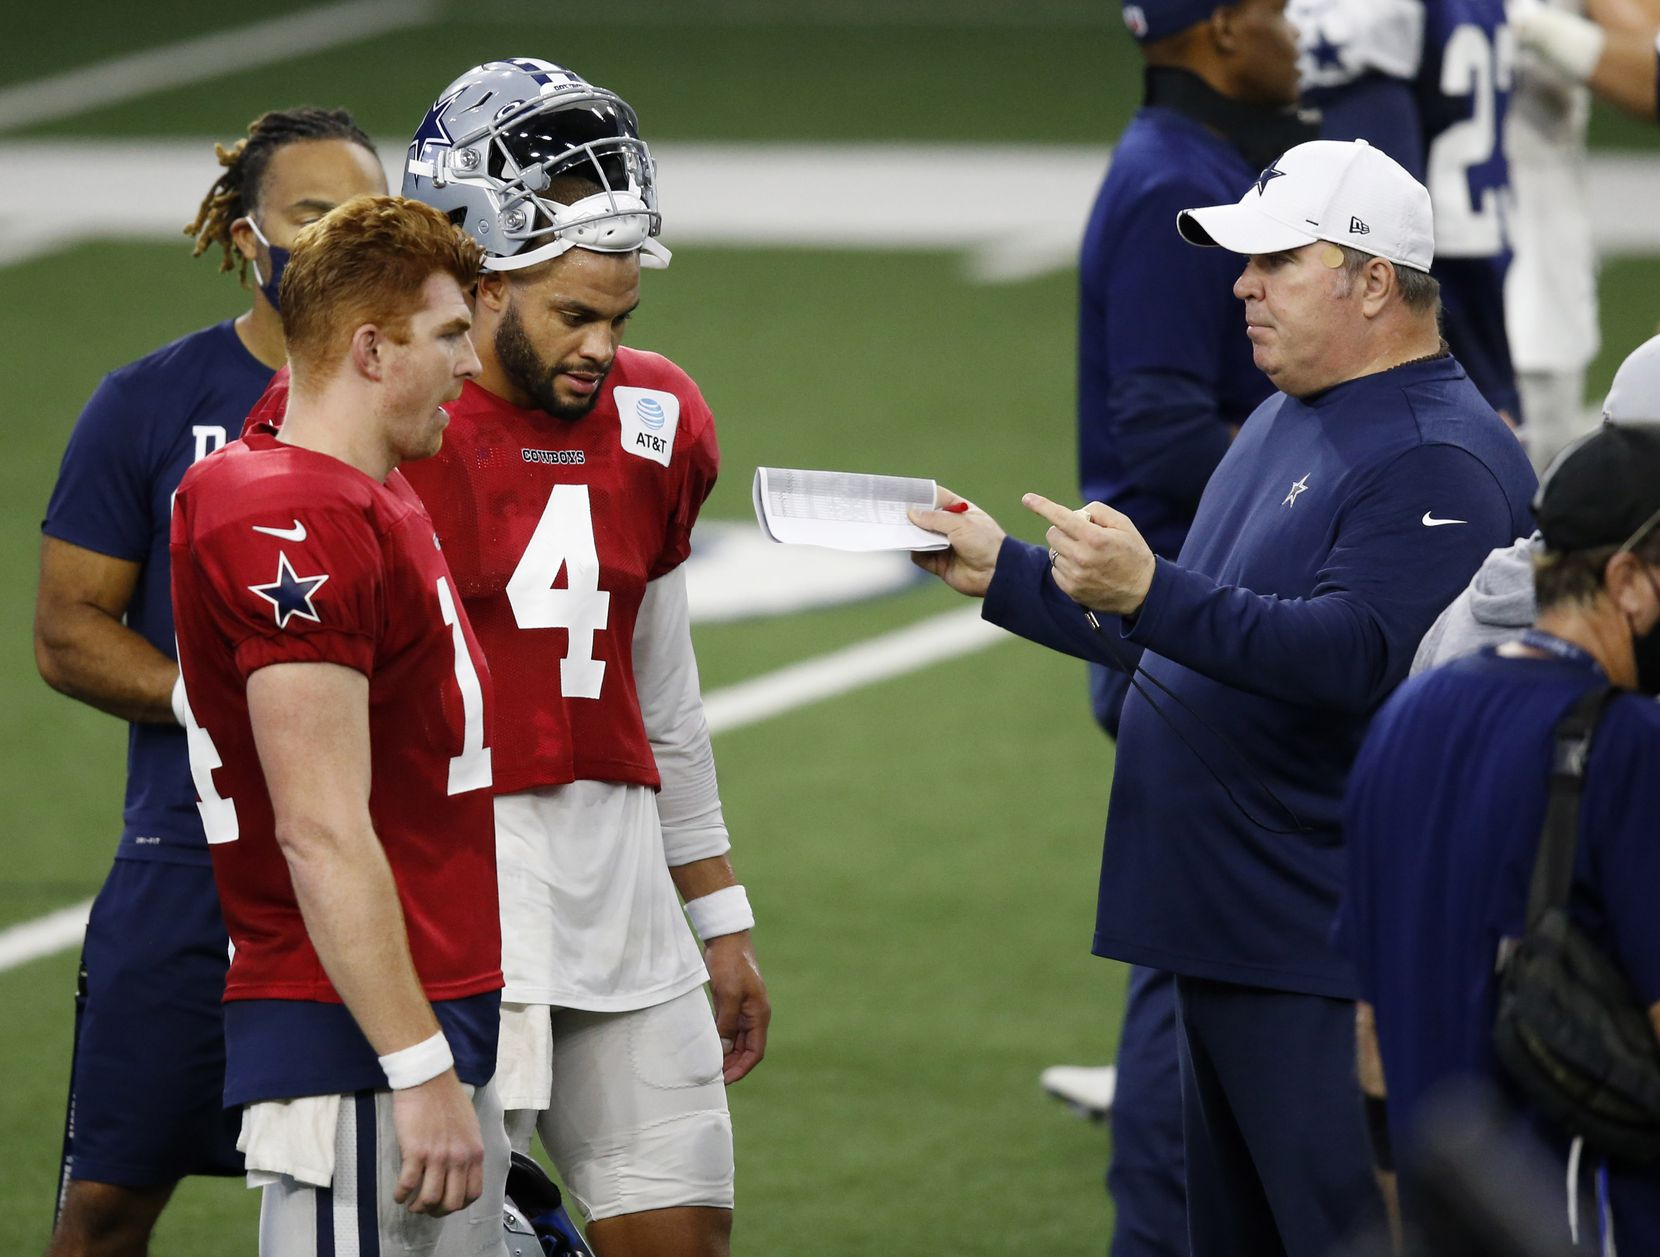 Dallas Cowboys head coach Mike McCarthy talks with Dallas Cowboys quarterback Andy Dalton (14) and Dallas Cowboys quarterback Dak Prescott (4) in practice during training camp at the Dallas Cowboys headquarters at The Star in Frisco, Texas on Friday, August 28, 2020. (Vernon Bryant/The Dallas Morning News)